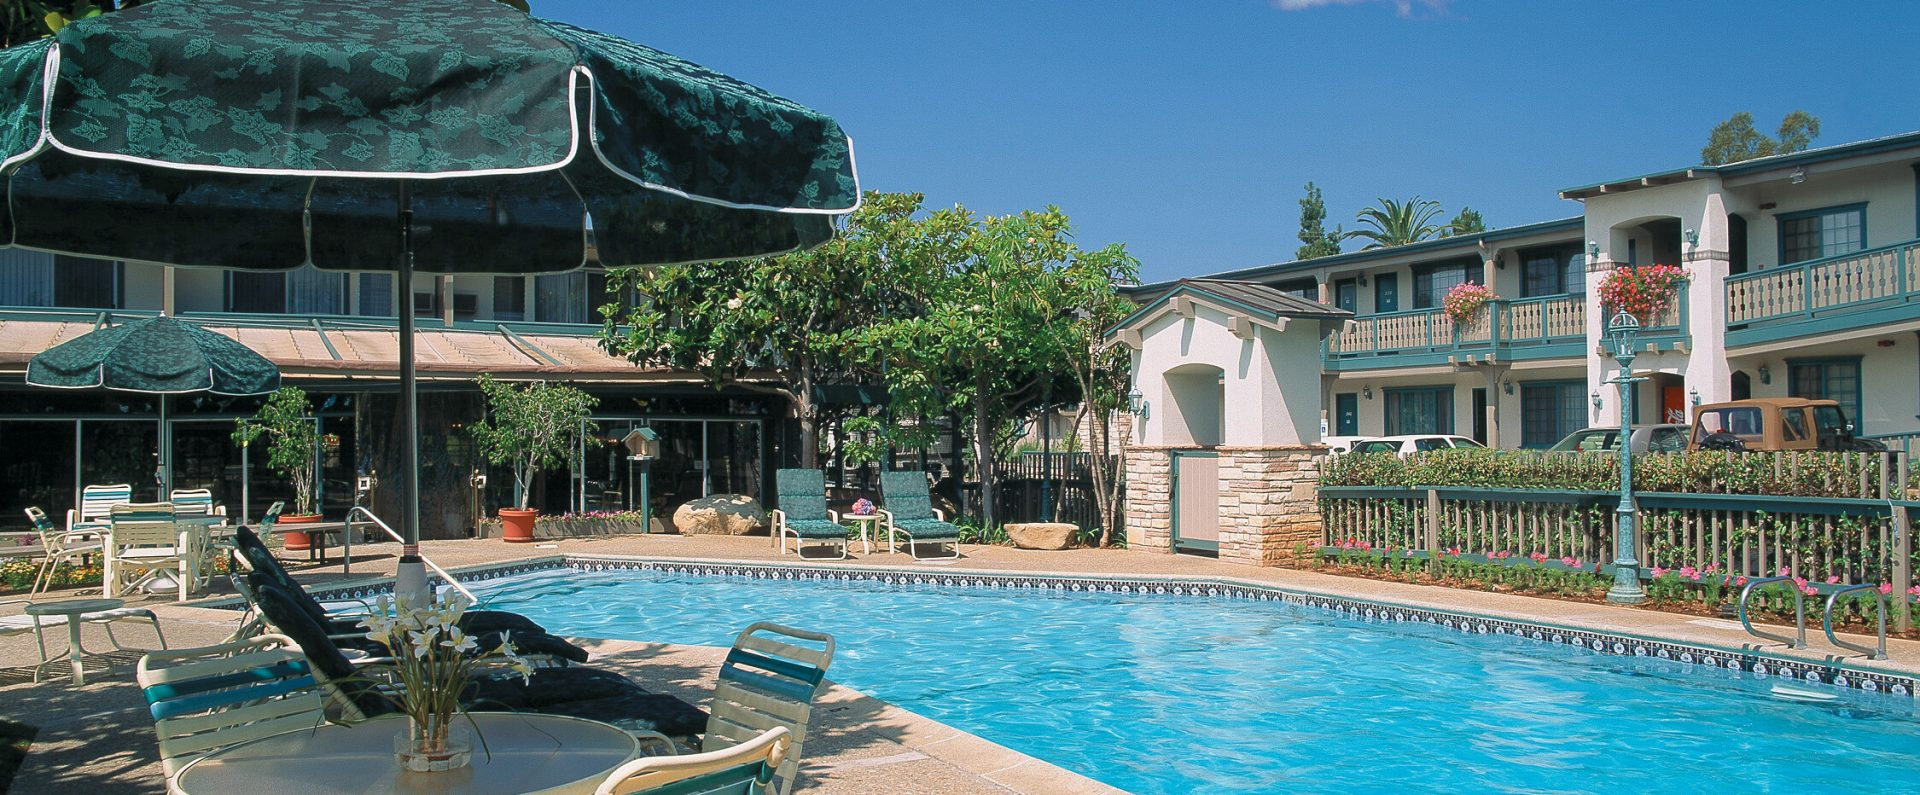 Outdoor heated pool deck at Best Western Plus Encina Inn & Suites